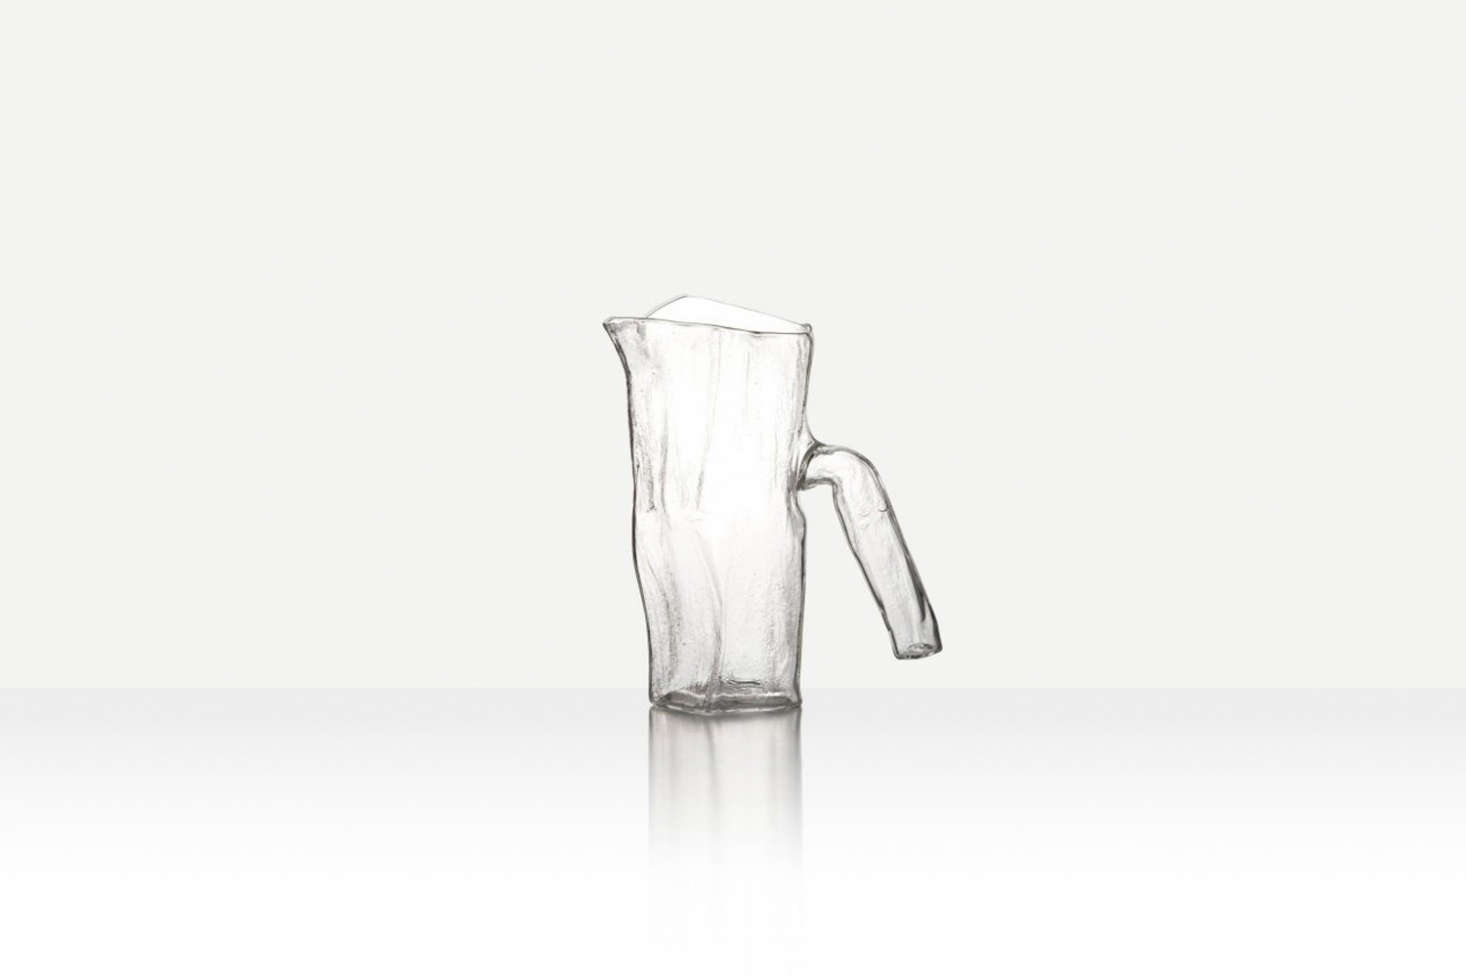 The Pressed Textural Jug from Jochen Holtz is free blown from borosilicate and has a textural pressed interior; it&#8